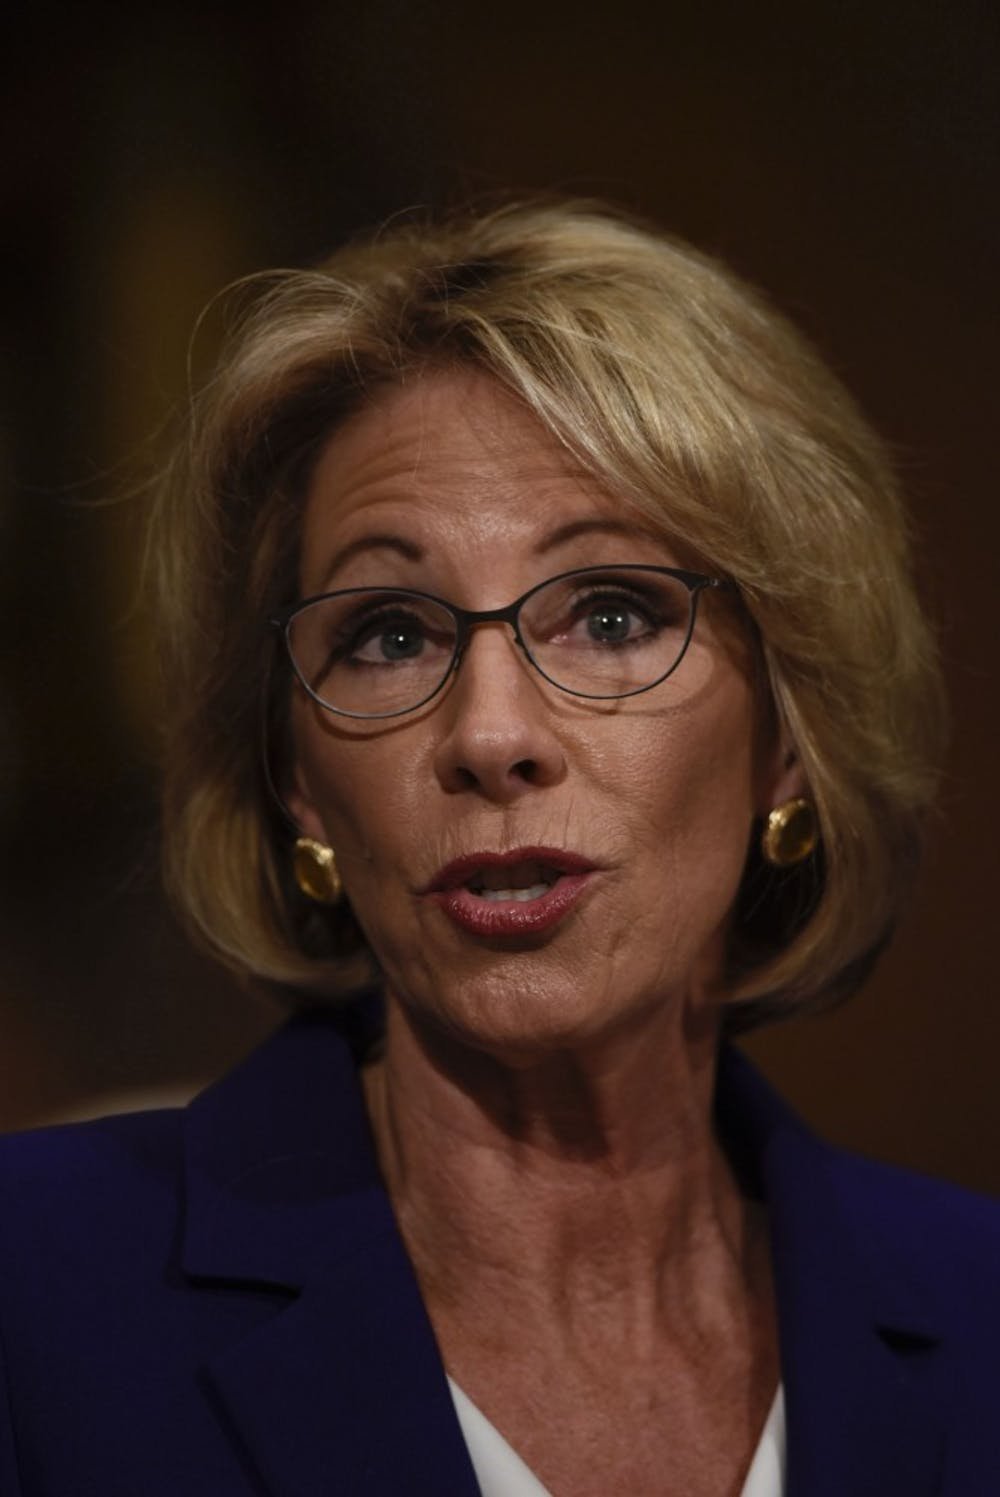 DeVos confirmed as education secretary as Pence breaks tie